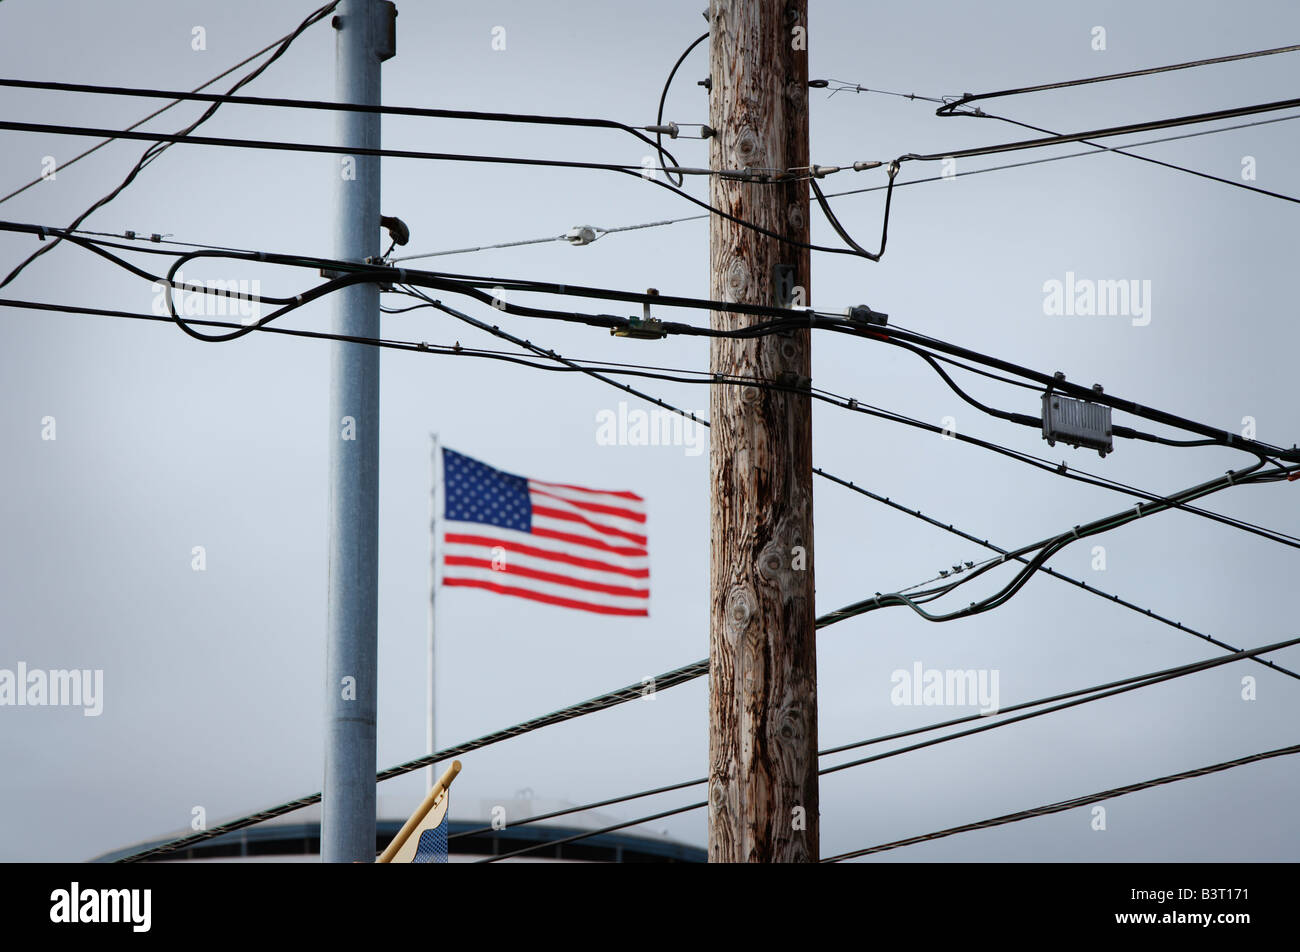 American flag behind phone wires and electrical wires - Stock Image